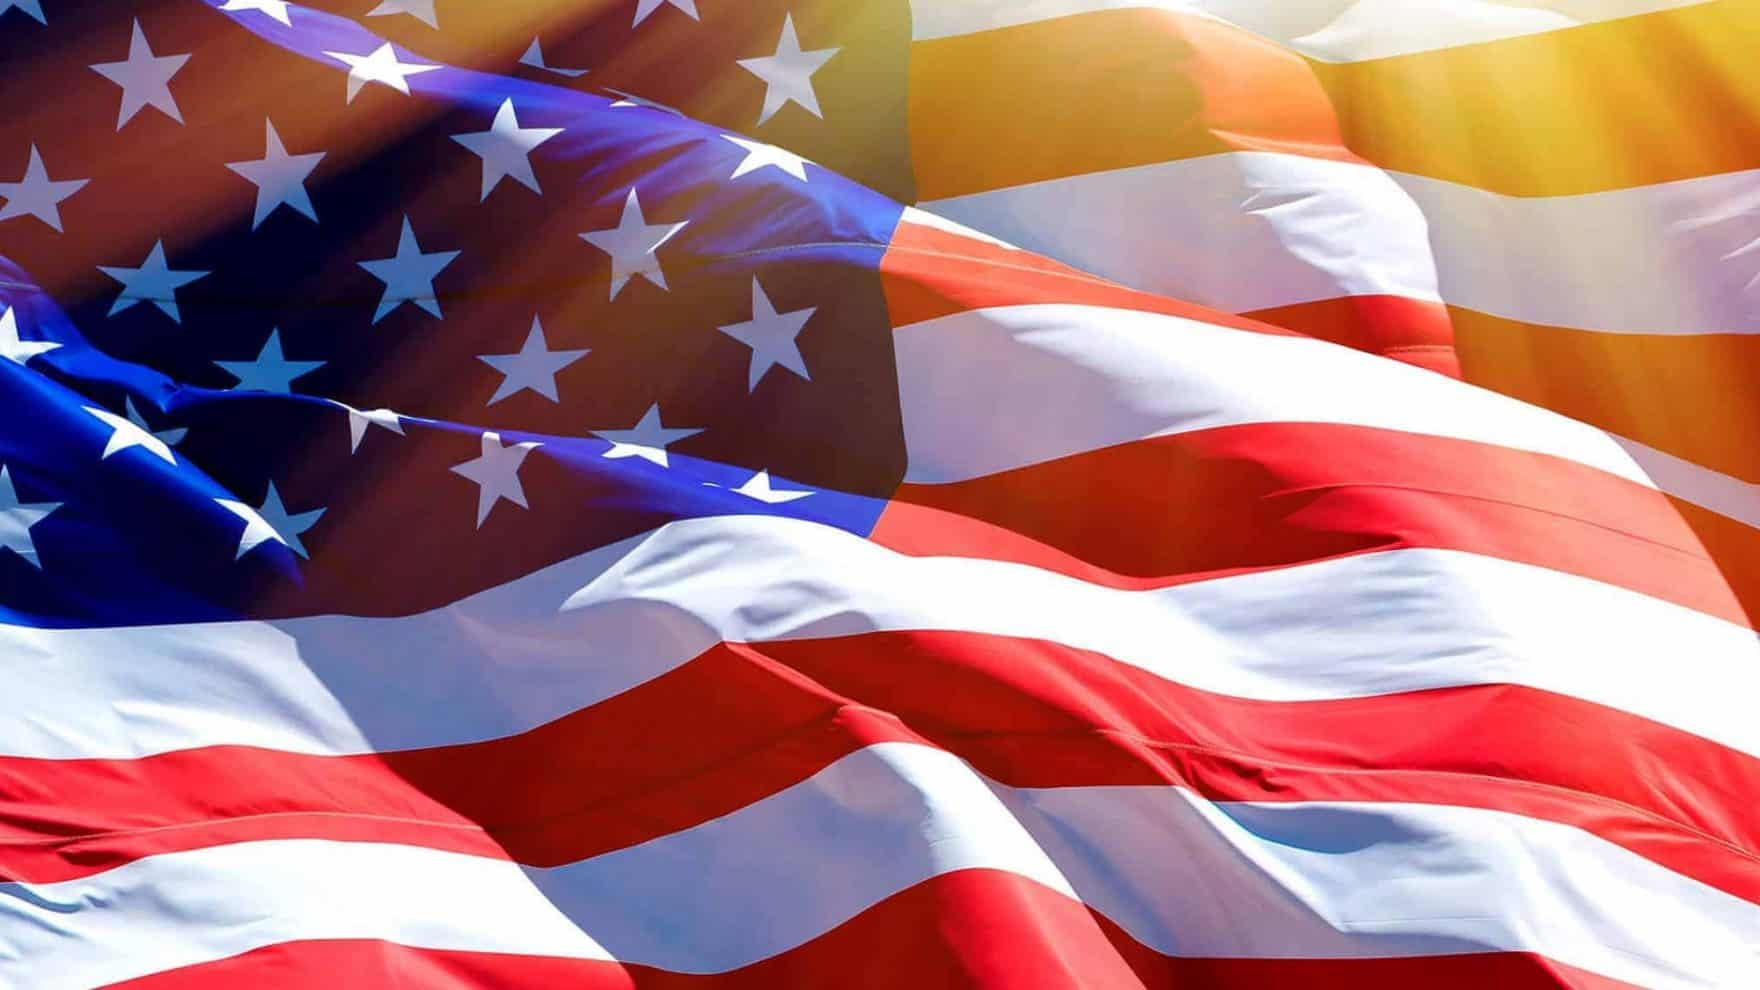 The American flag: Register for the virtual conference Analyzing American Election Integrity.